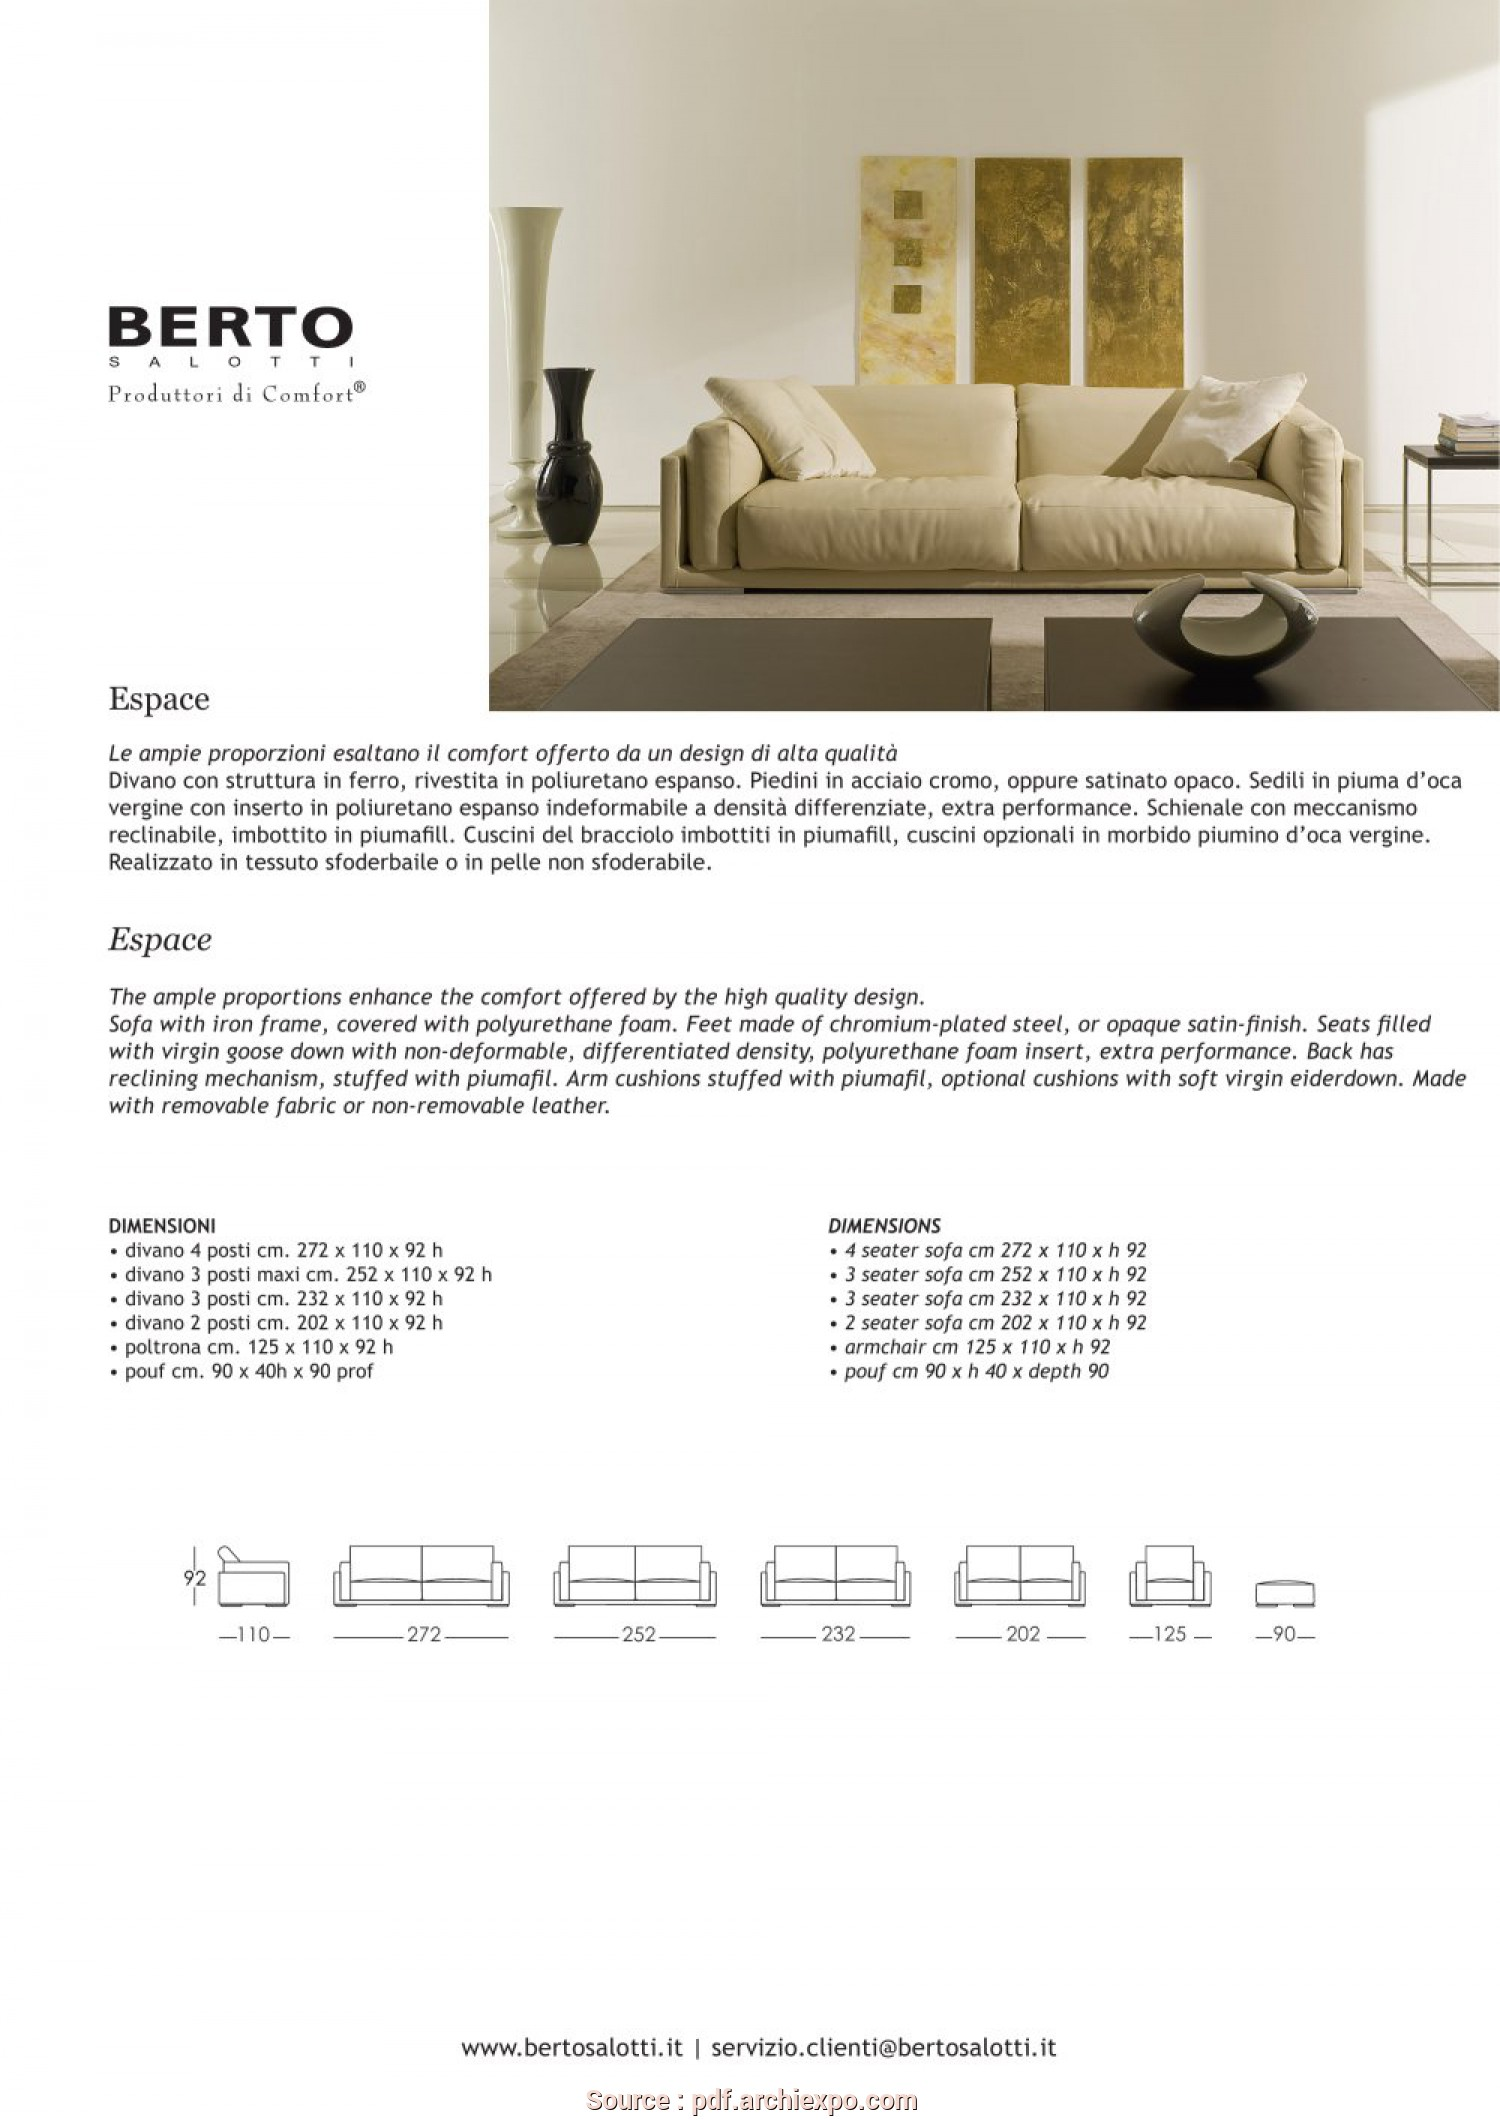 Dimensione Divano 4 Posti, Ideale Espace Sofa, BERTO SALOTTI -, Catalogs, Documentation, Brochures